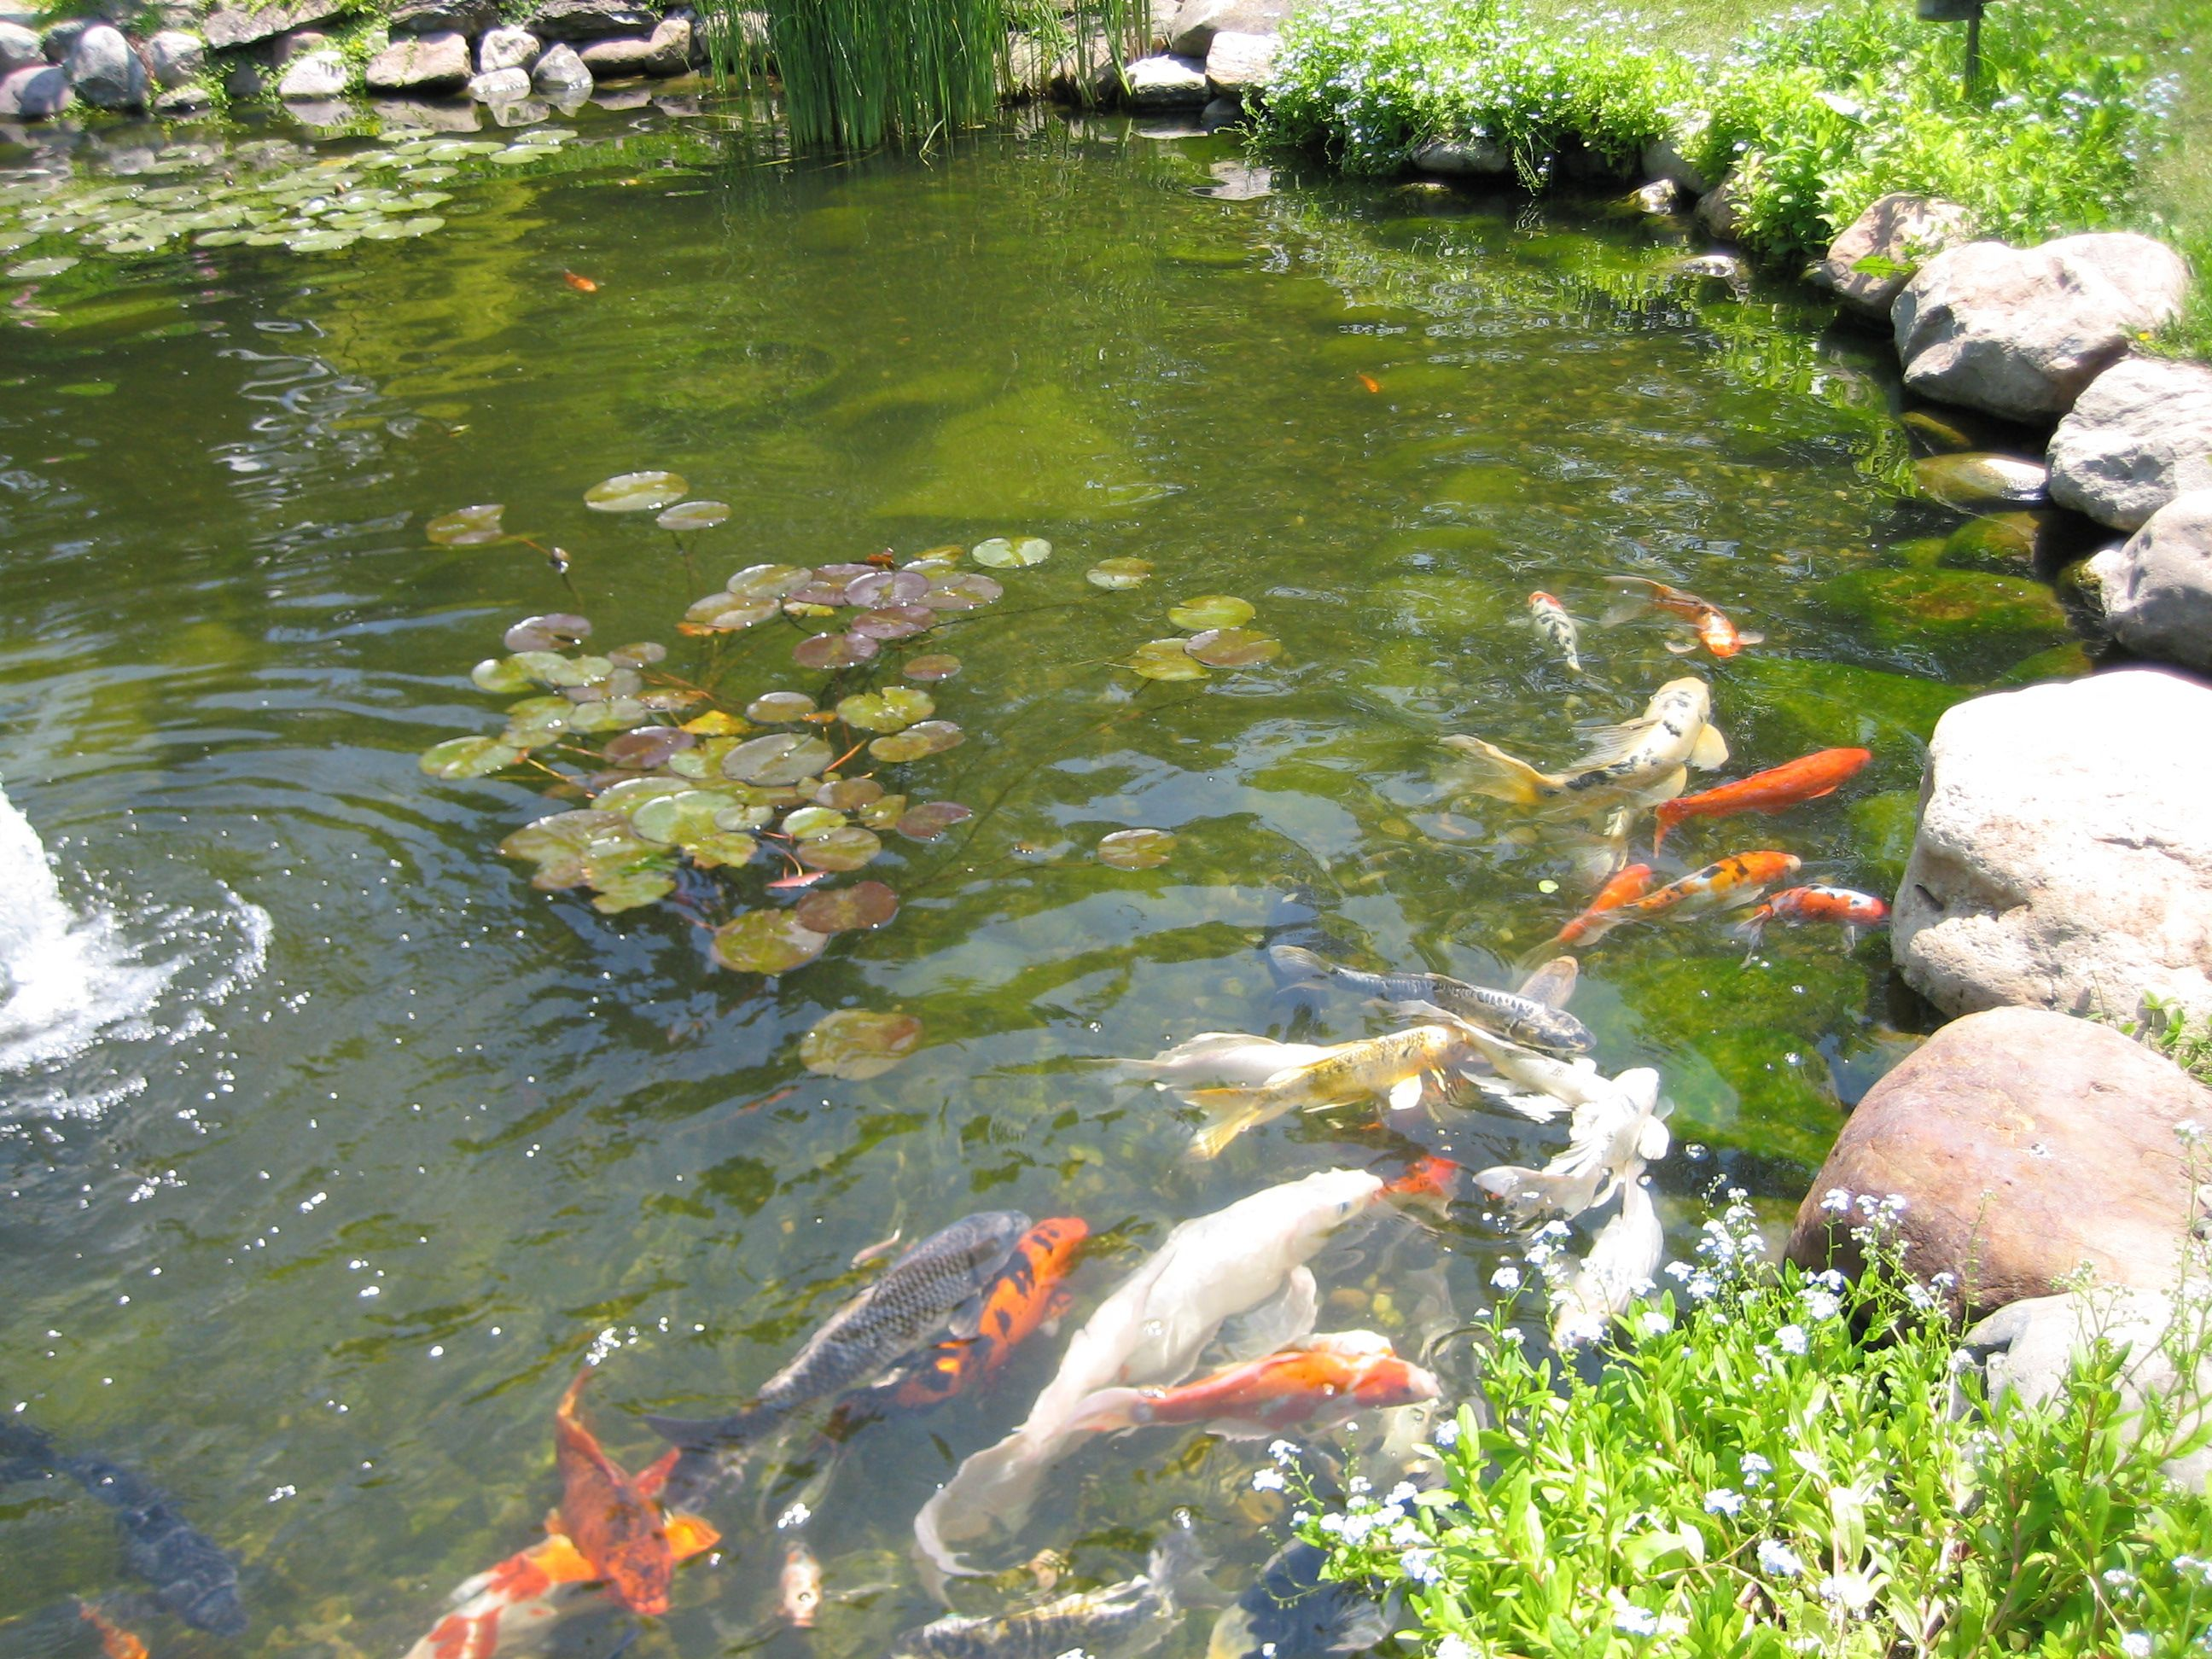 Landscaping waterfalls and fish ponds koi fish for Tiny koi fish